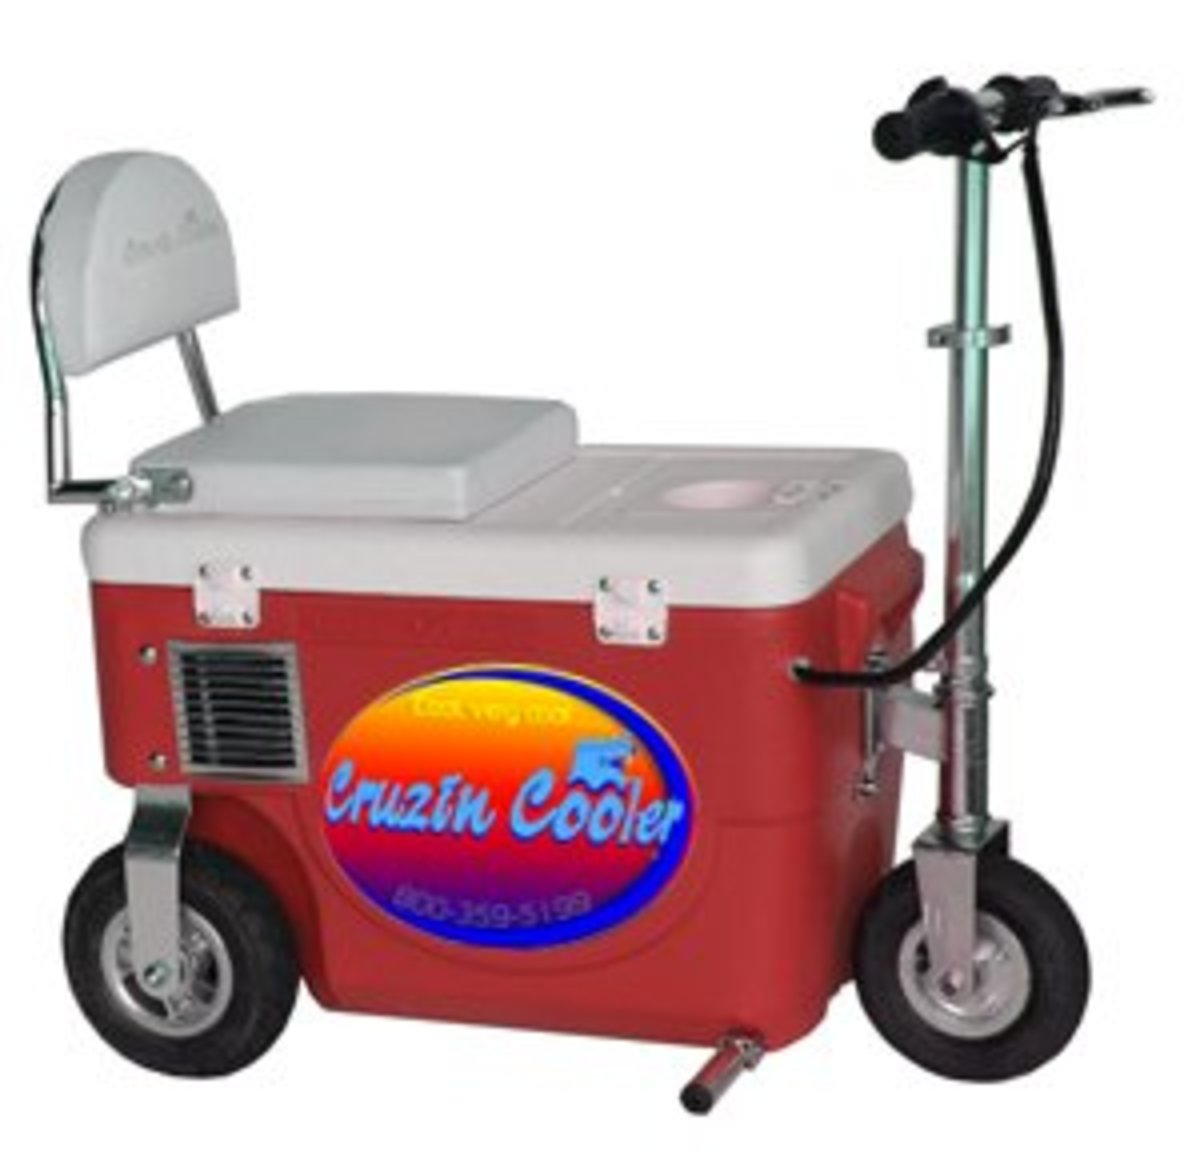 Cruzin Coolers or Cooler Scooters - What a way to get around!